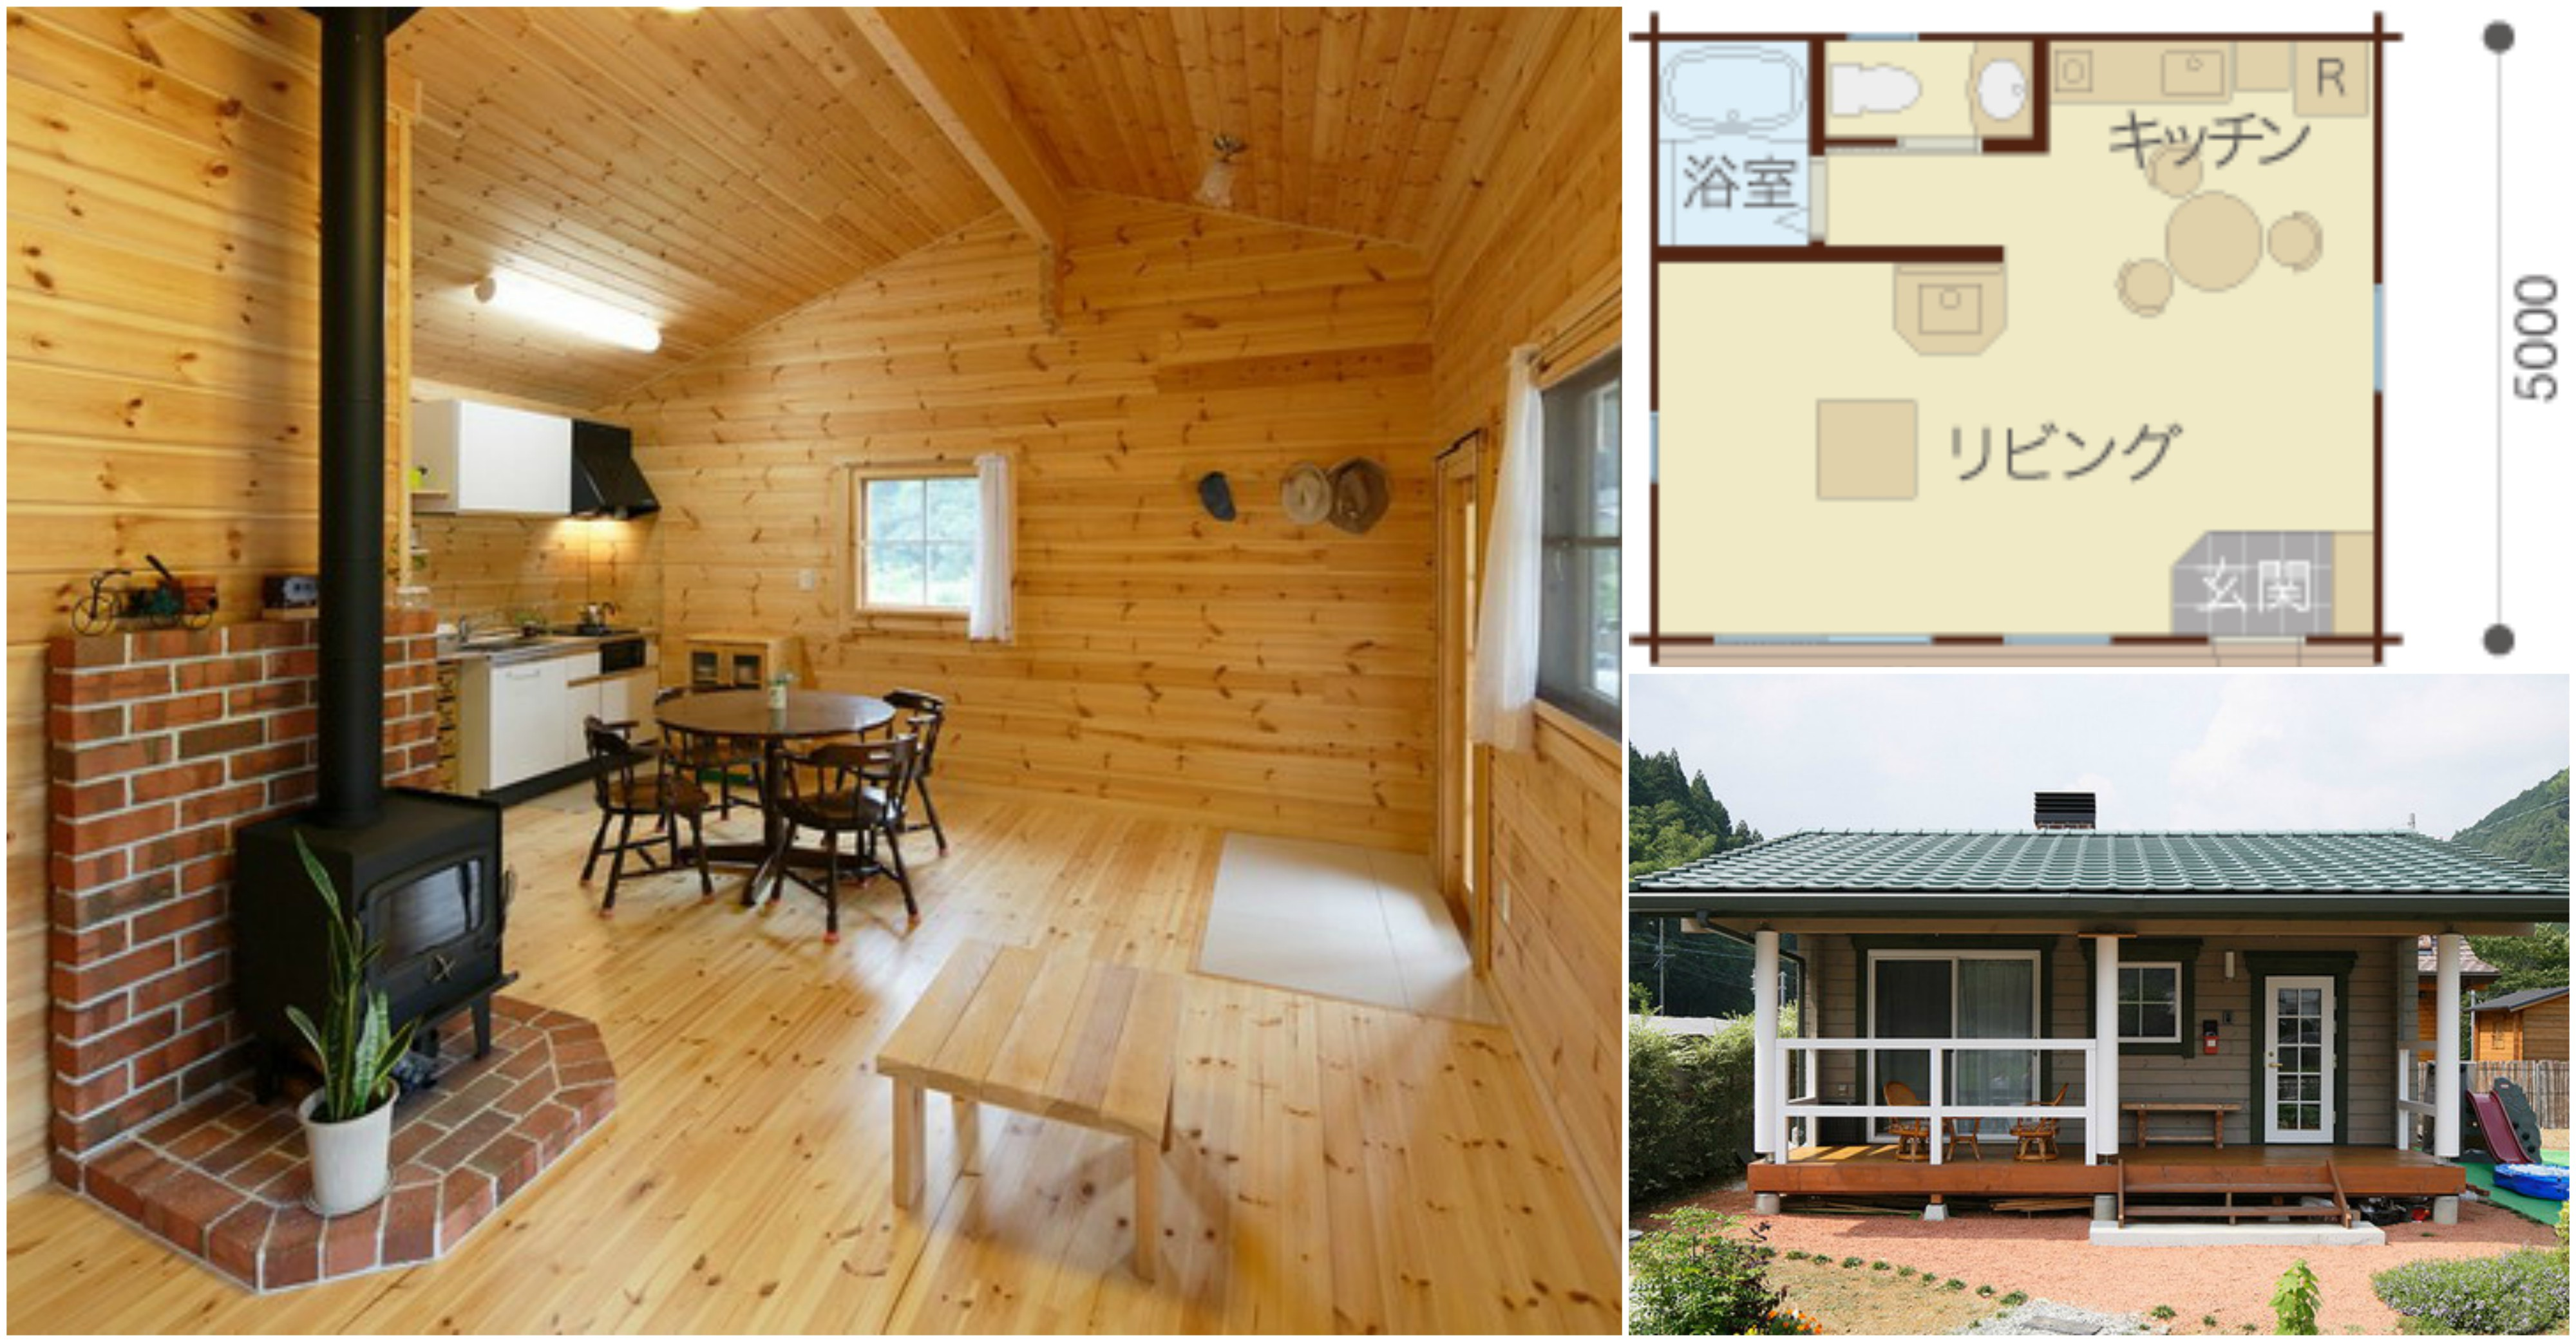 A Japanese Style Tiny House Check Out That All Wood Interior